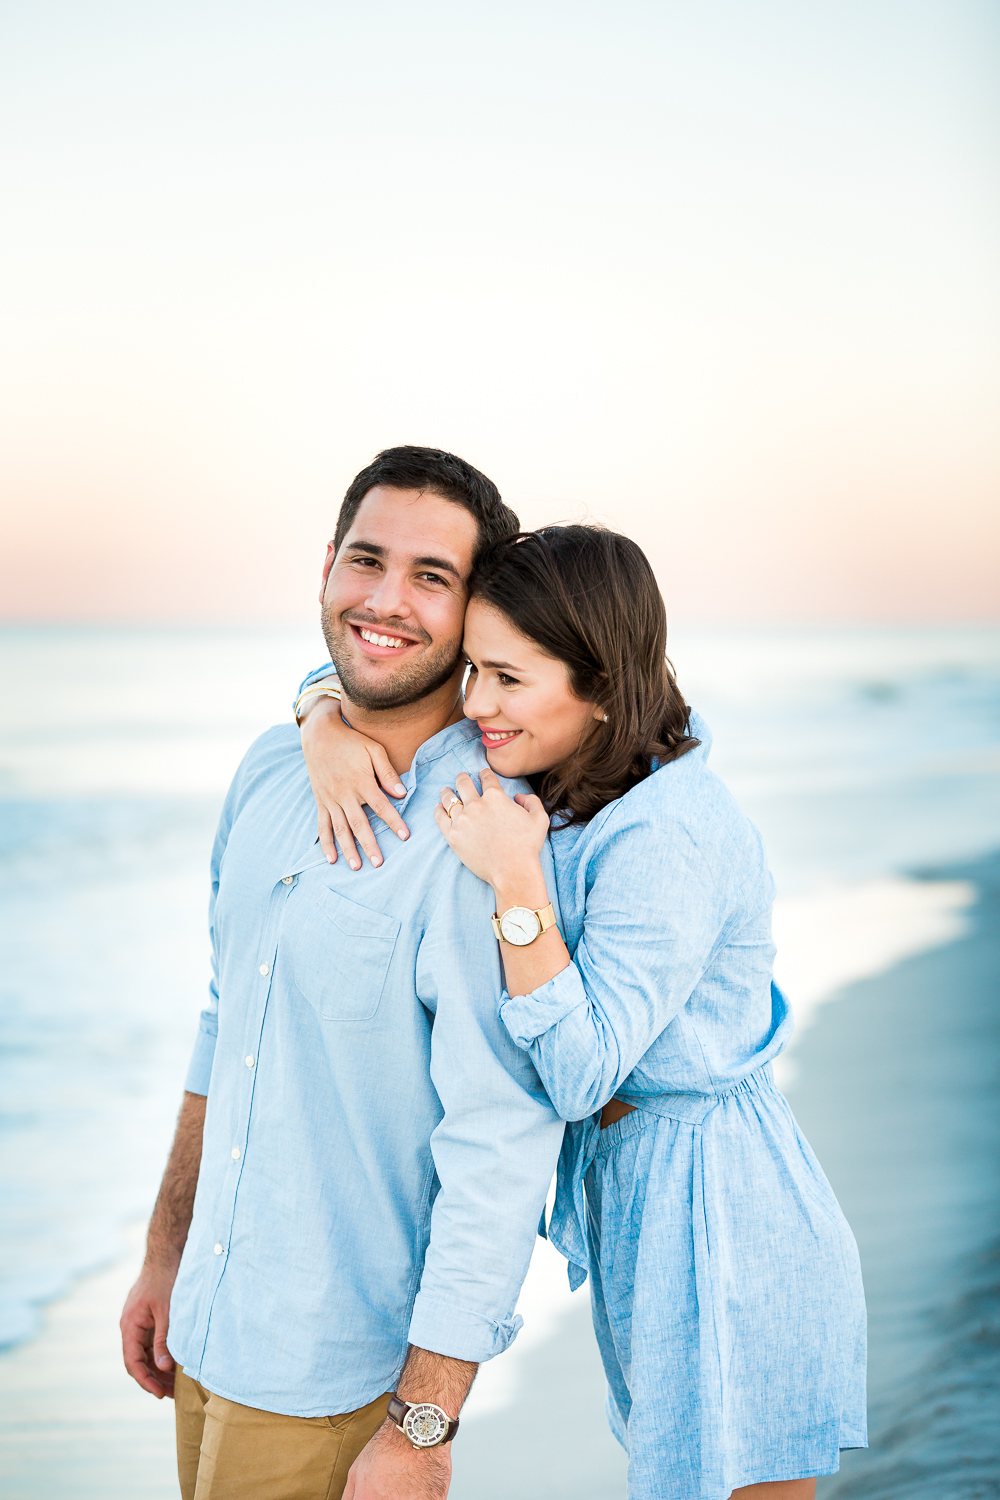 sunset beach engagement photos in ponte vedra, fl